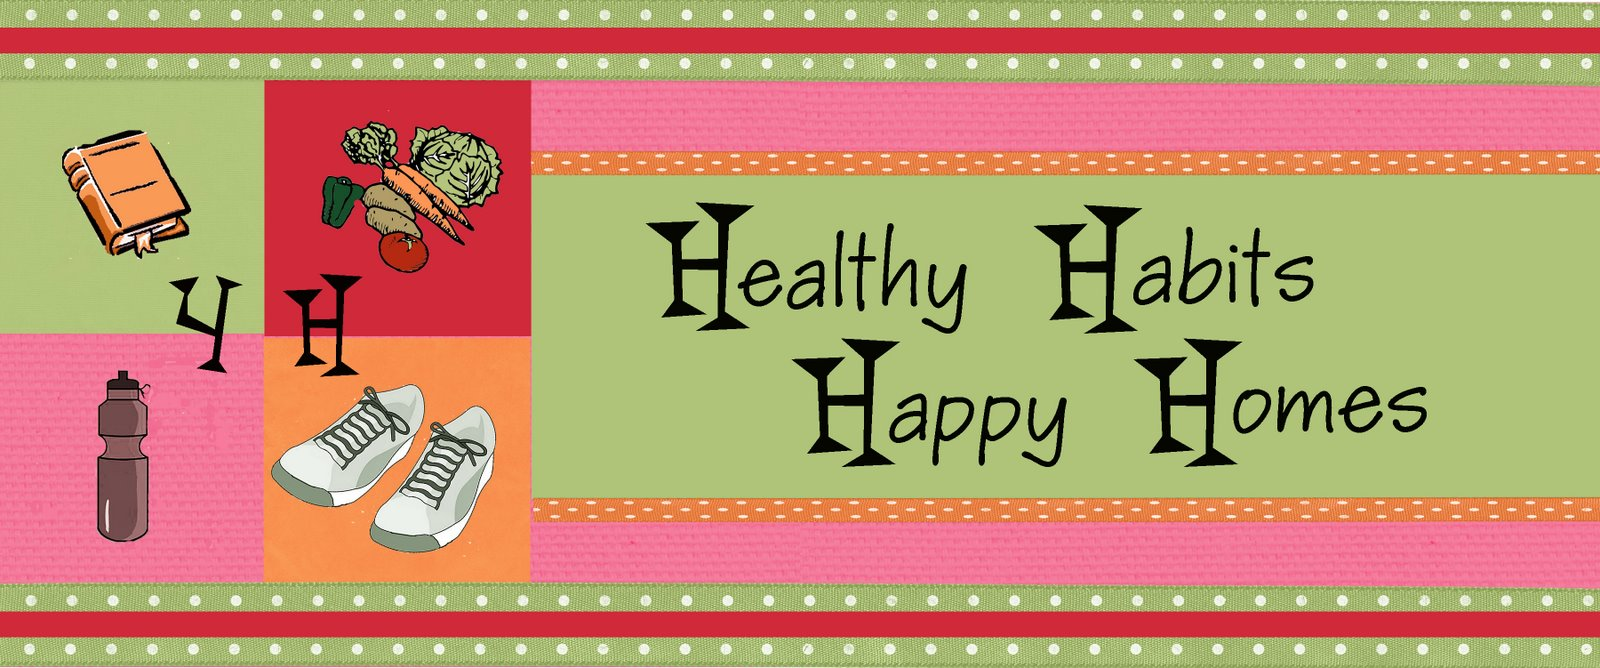 Healthy Habits, Happy Homes